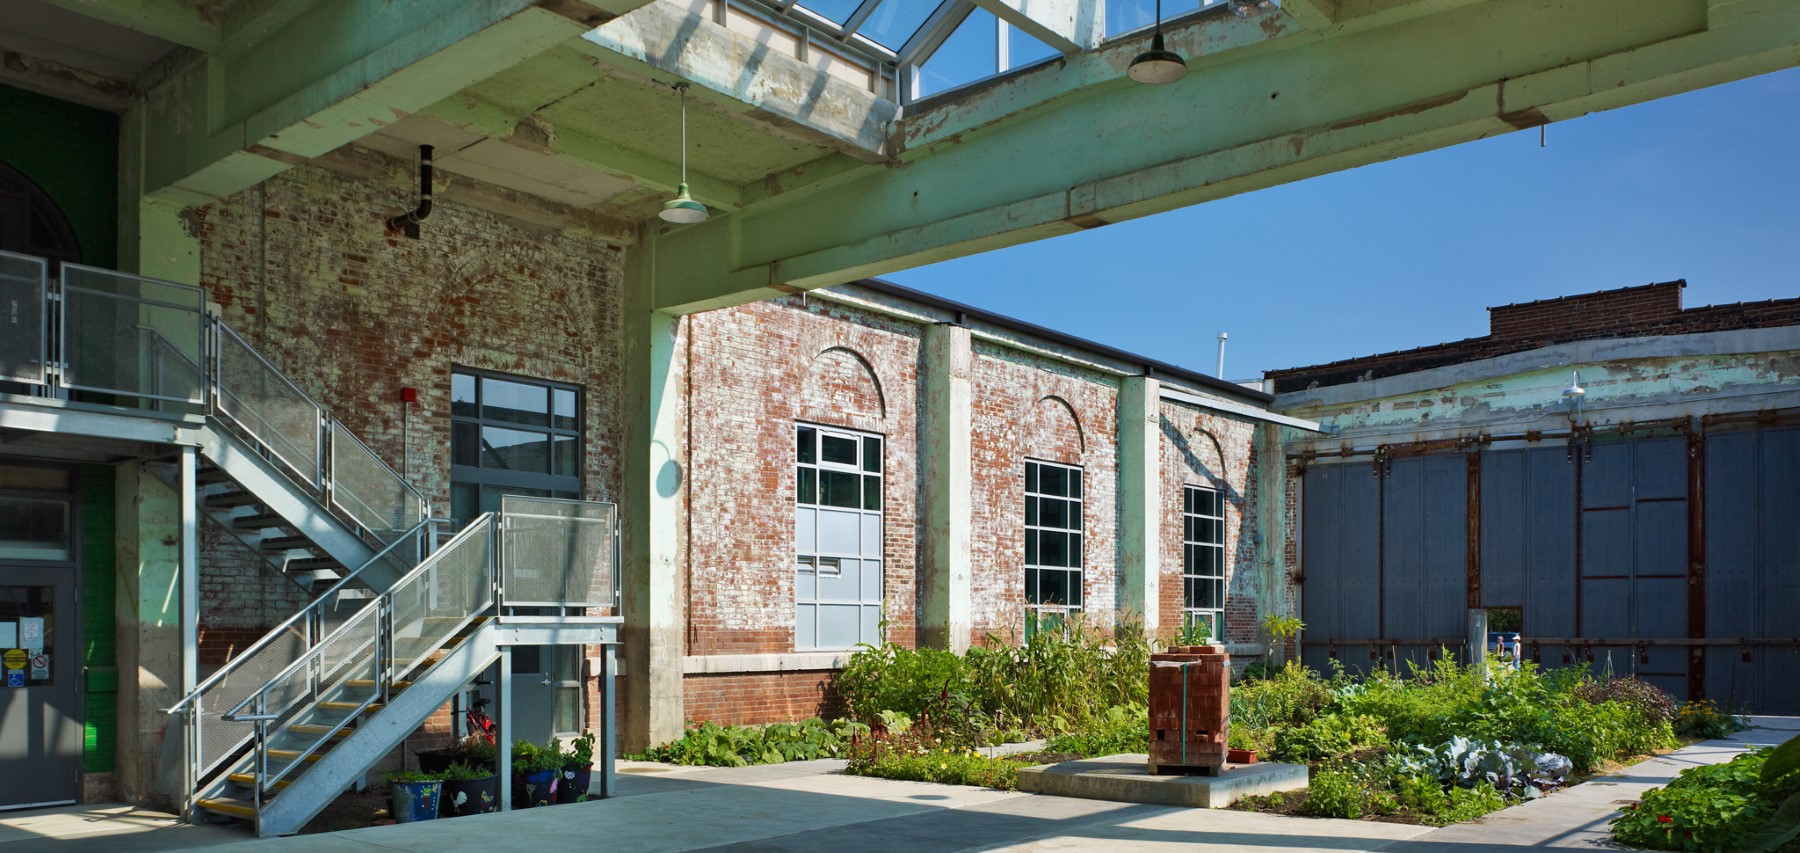 Artscape Wychwood Barns   Blackwell Structural Engineers